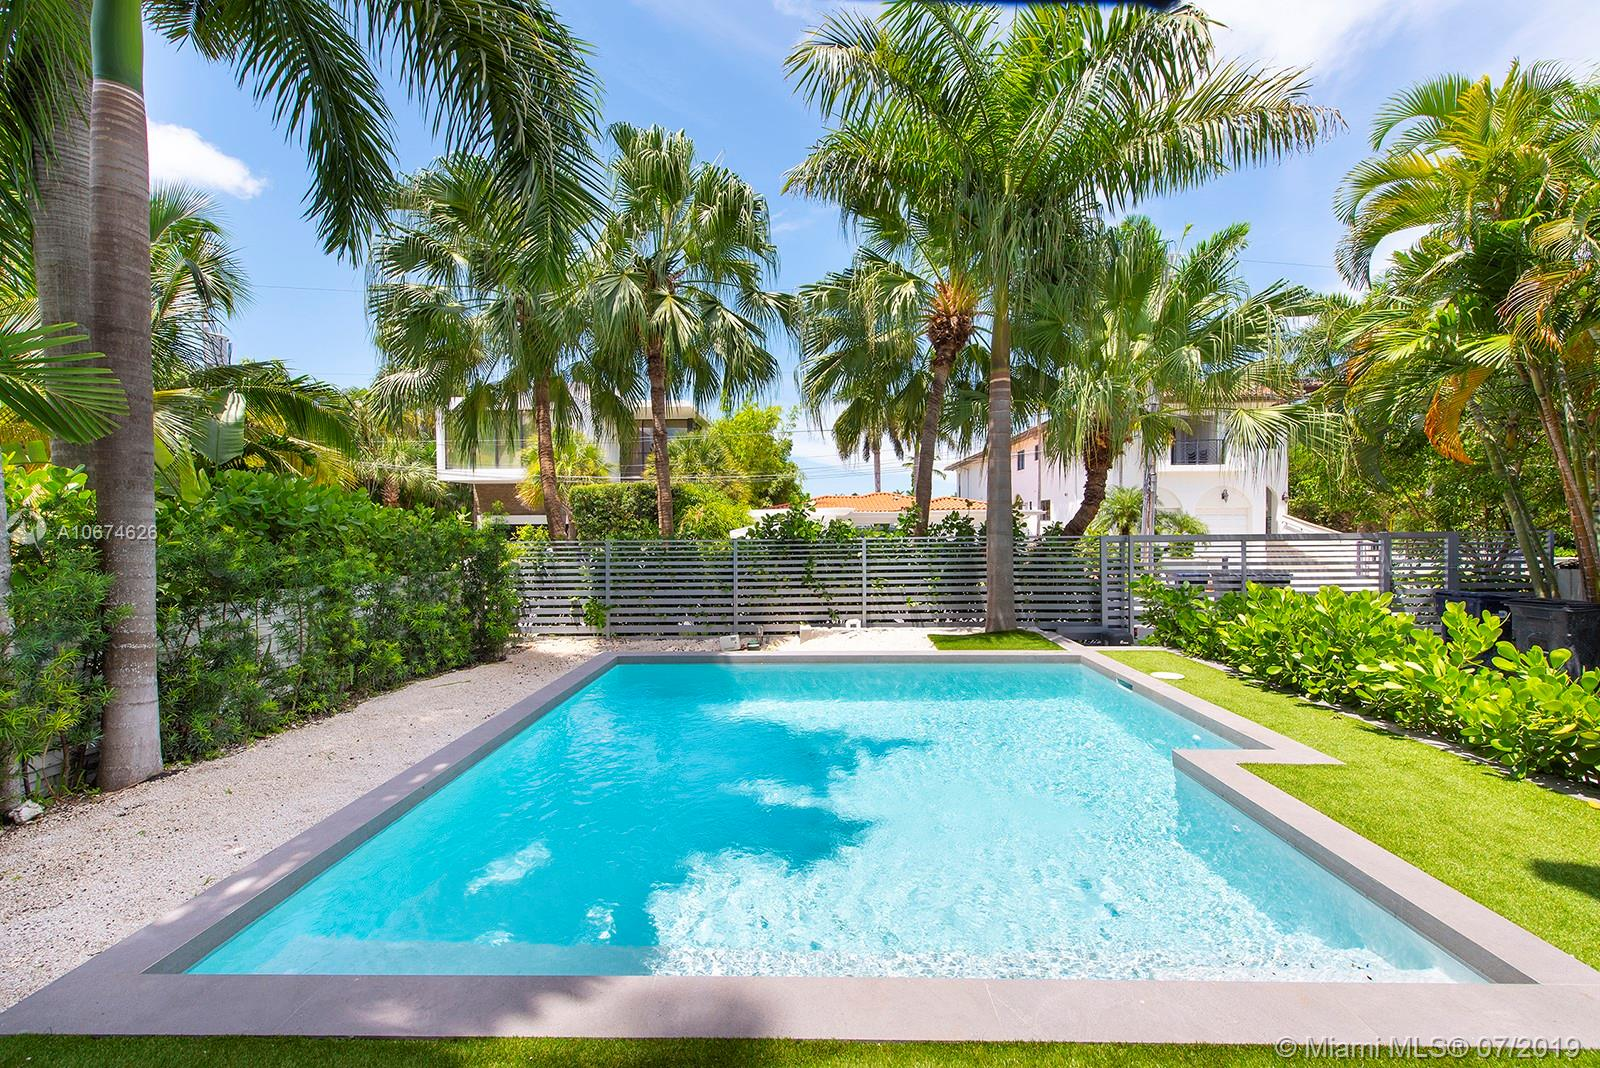 243 Palm ave- miami-beach-fl-33139-a10674626-Pic01